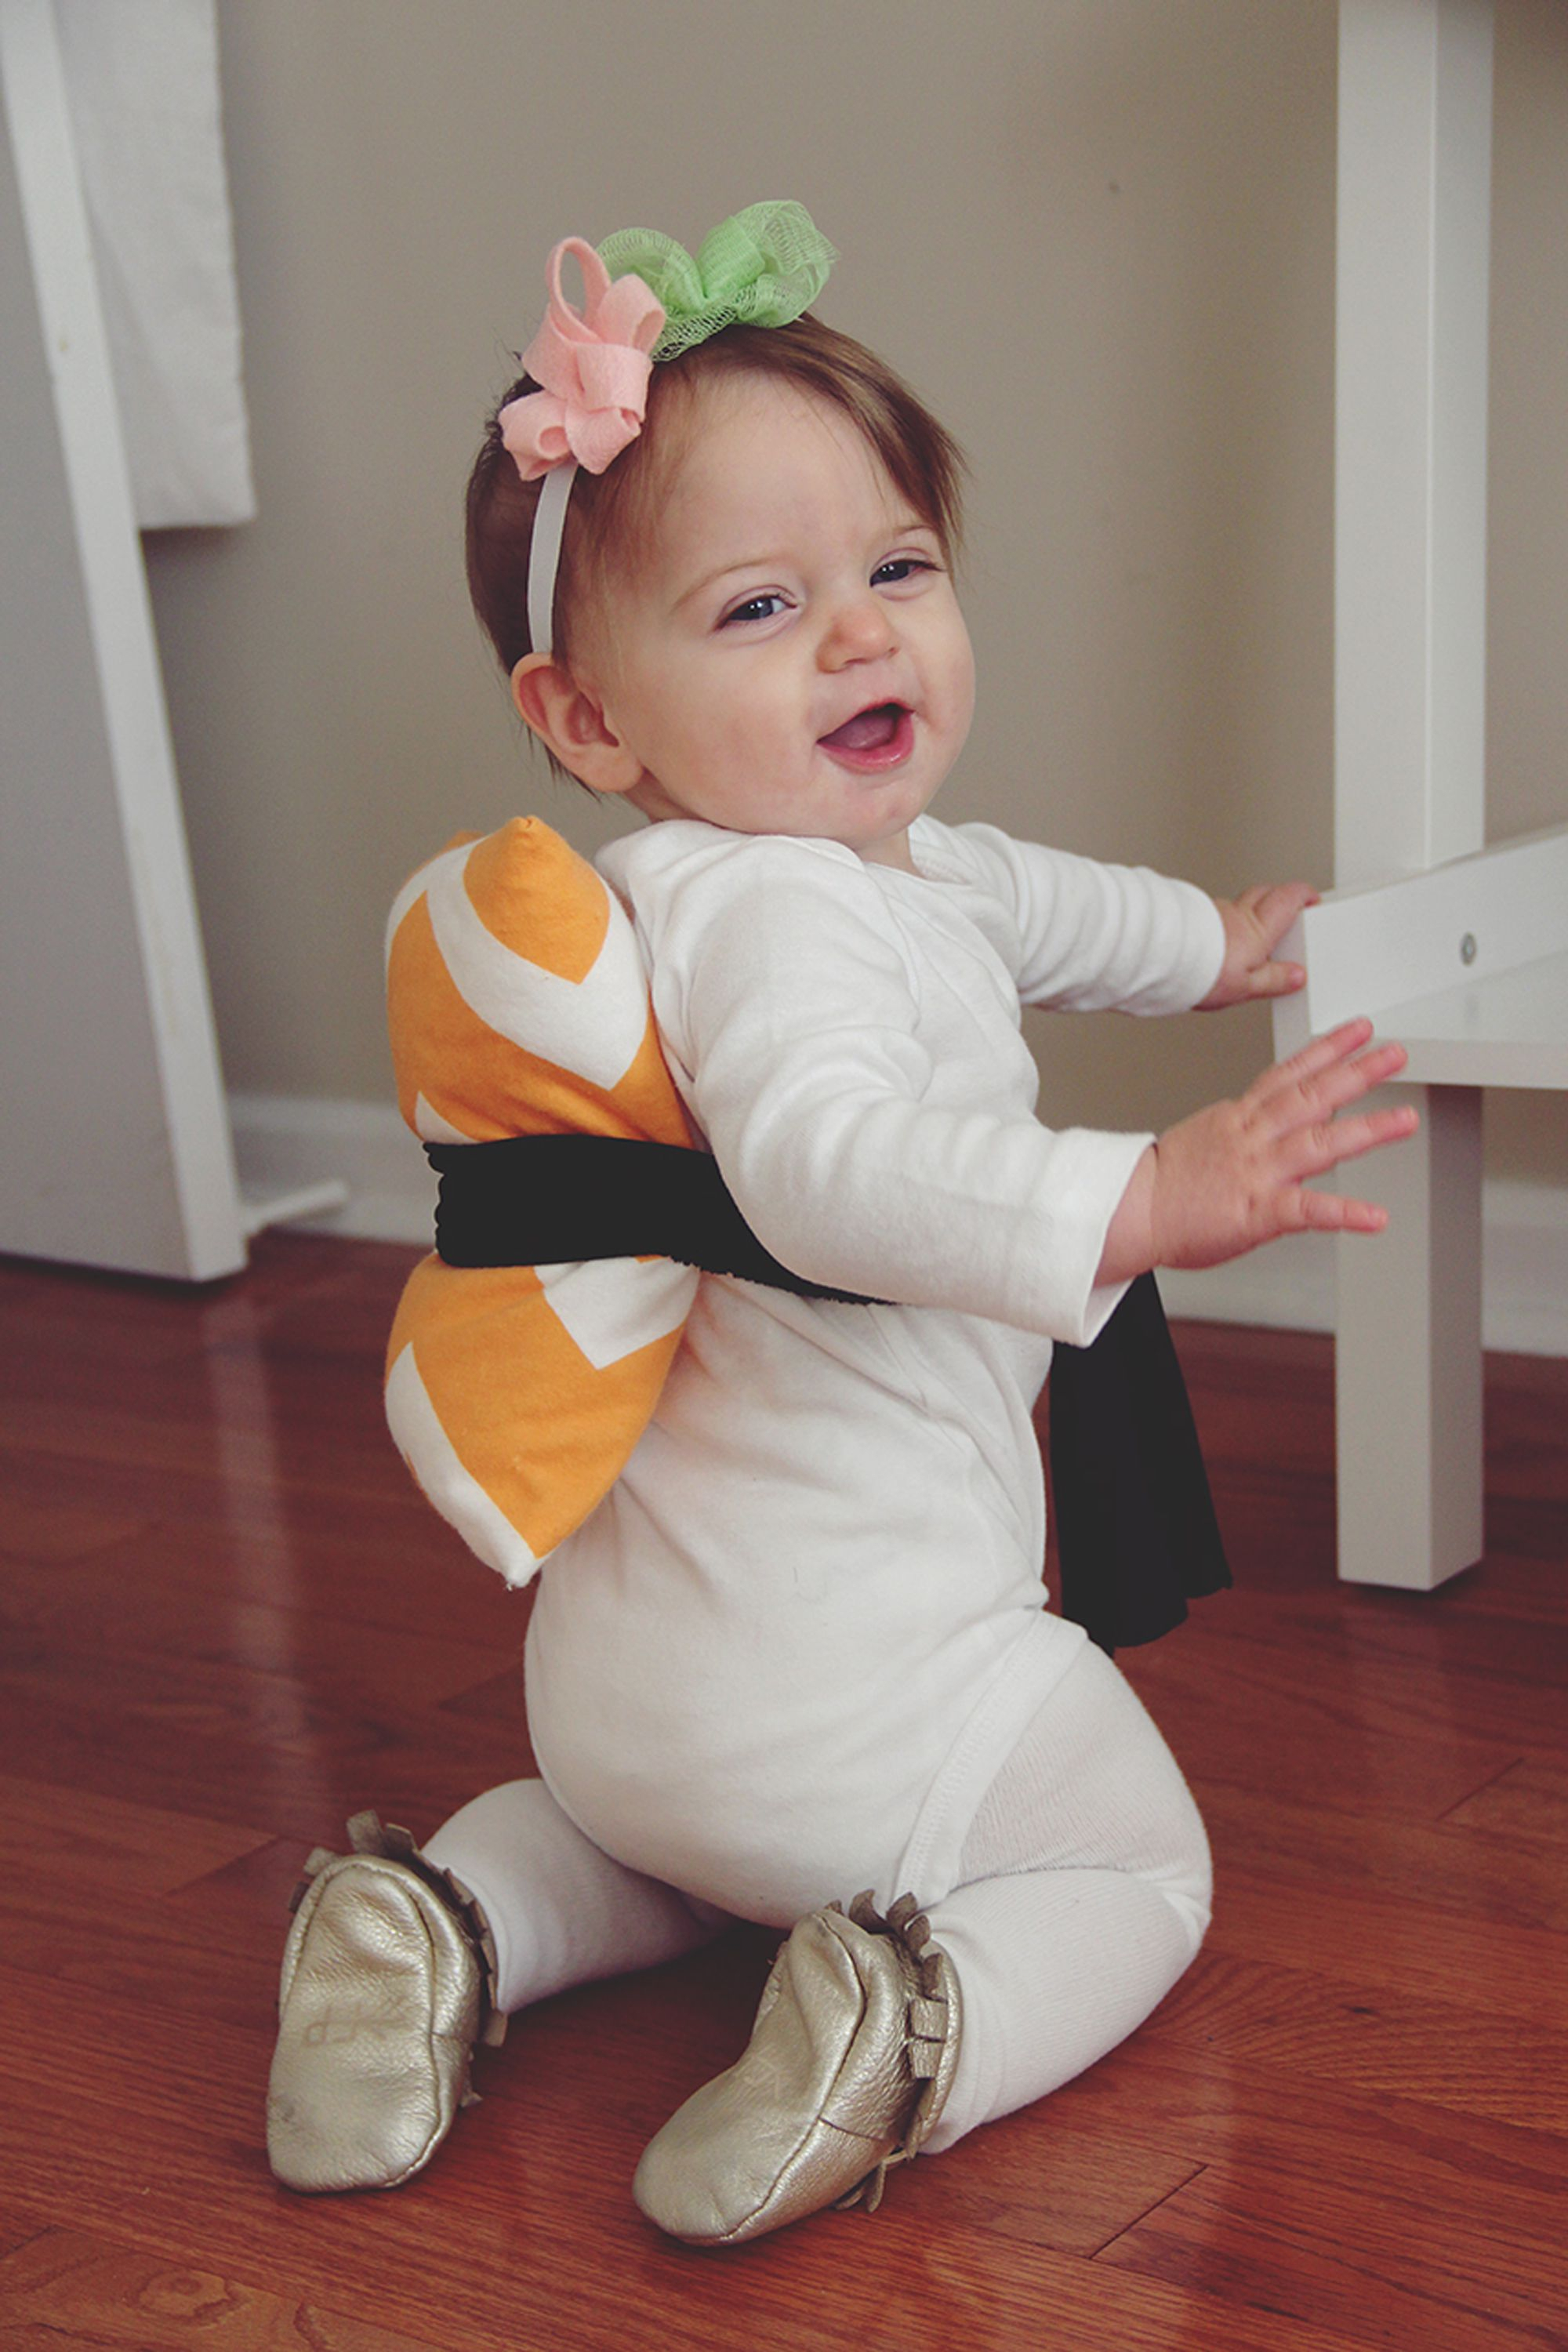 10 Wonderful Baby Costume Ideas For Girls 27 cute baby halloween costumes 2018 best ideas for boy girl 1 2021